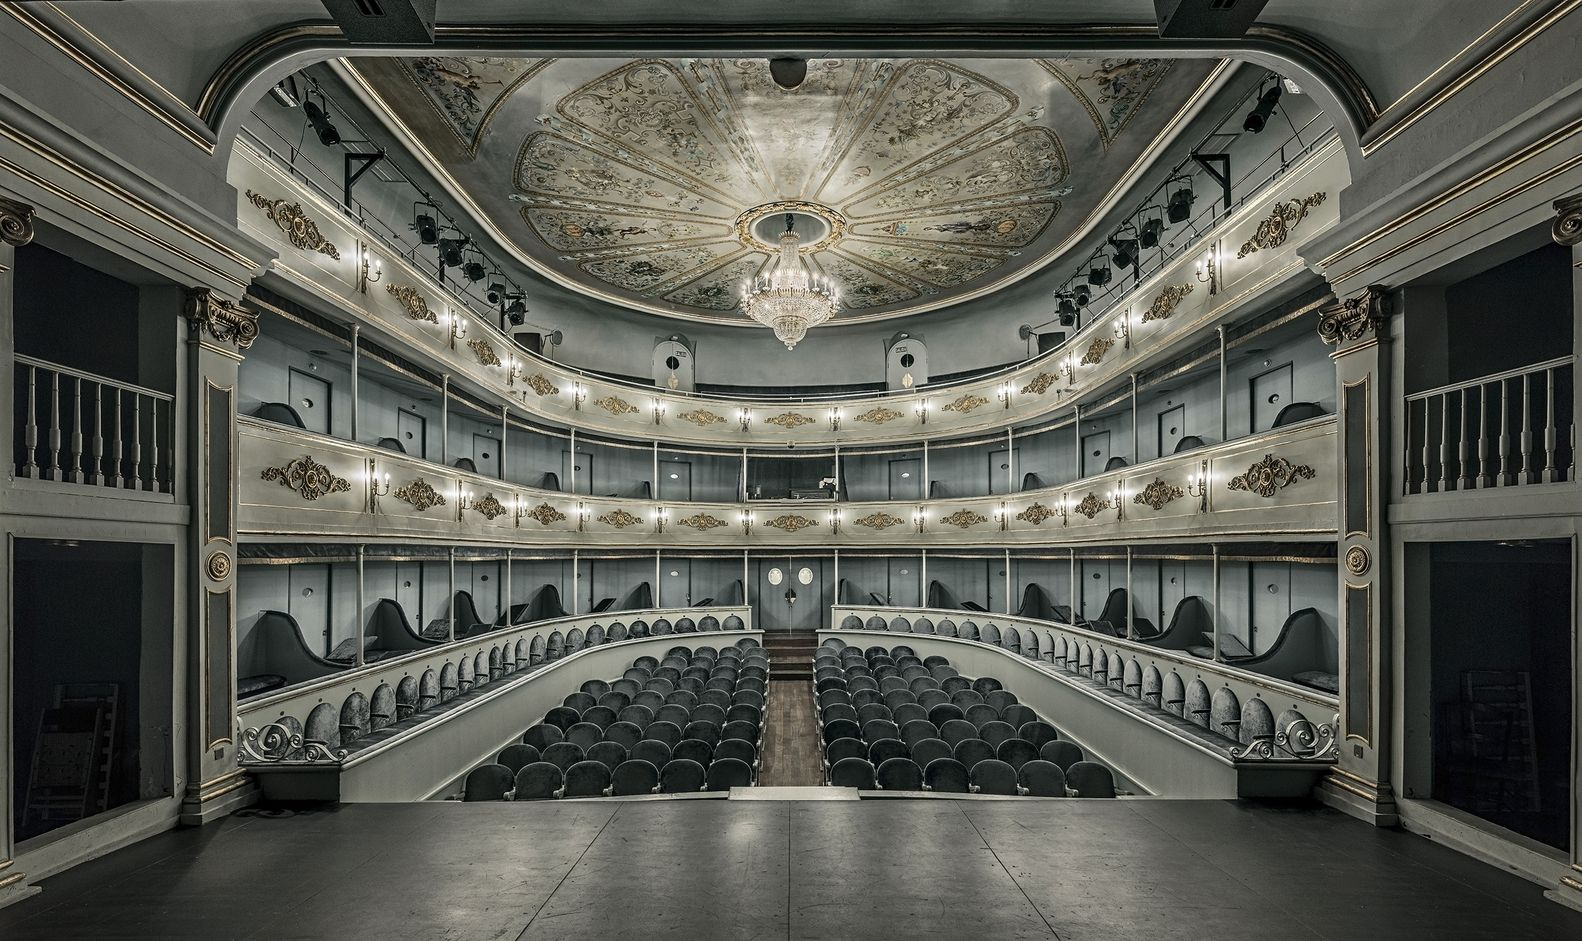 best award winning architecture photo interior from the stage by m.chamizo